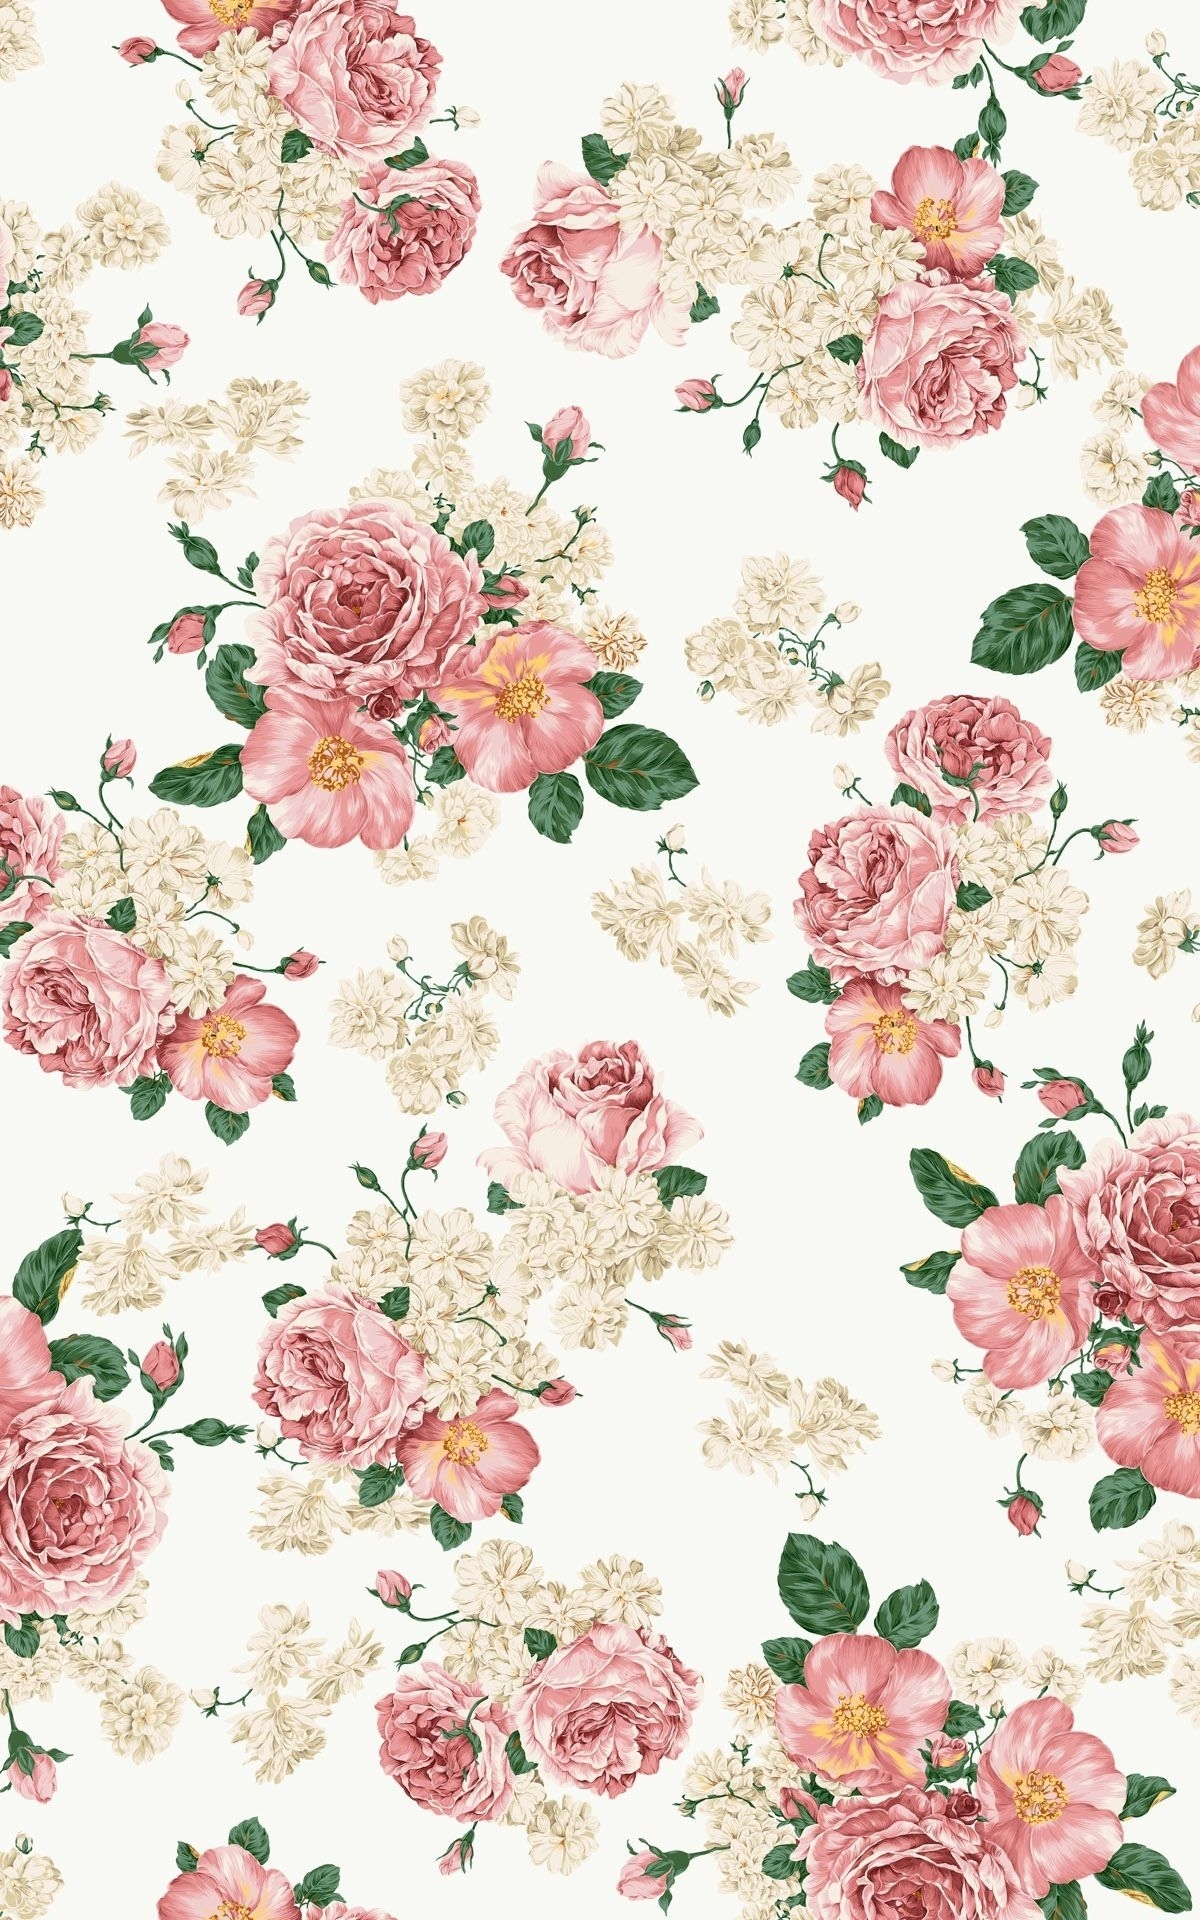 tumblr backgrounds flowers images photos | wallpaper